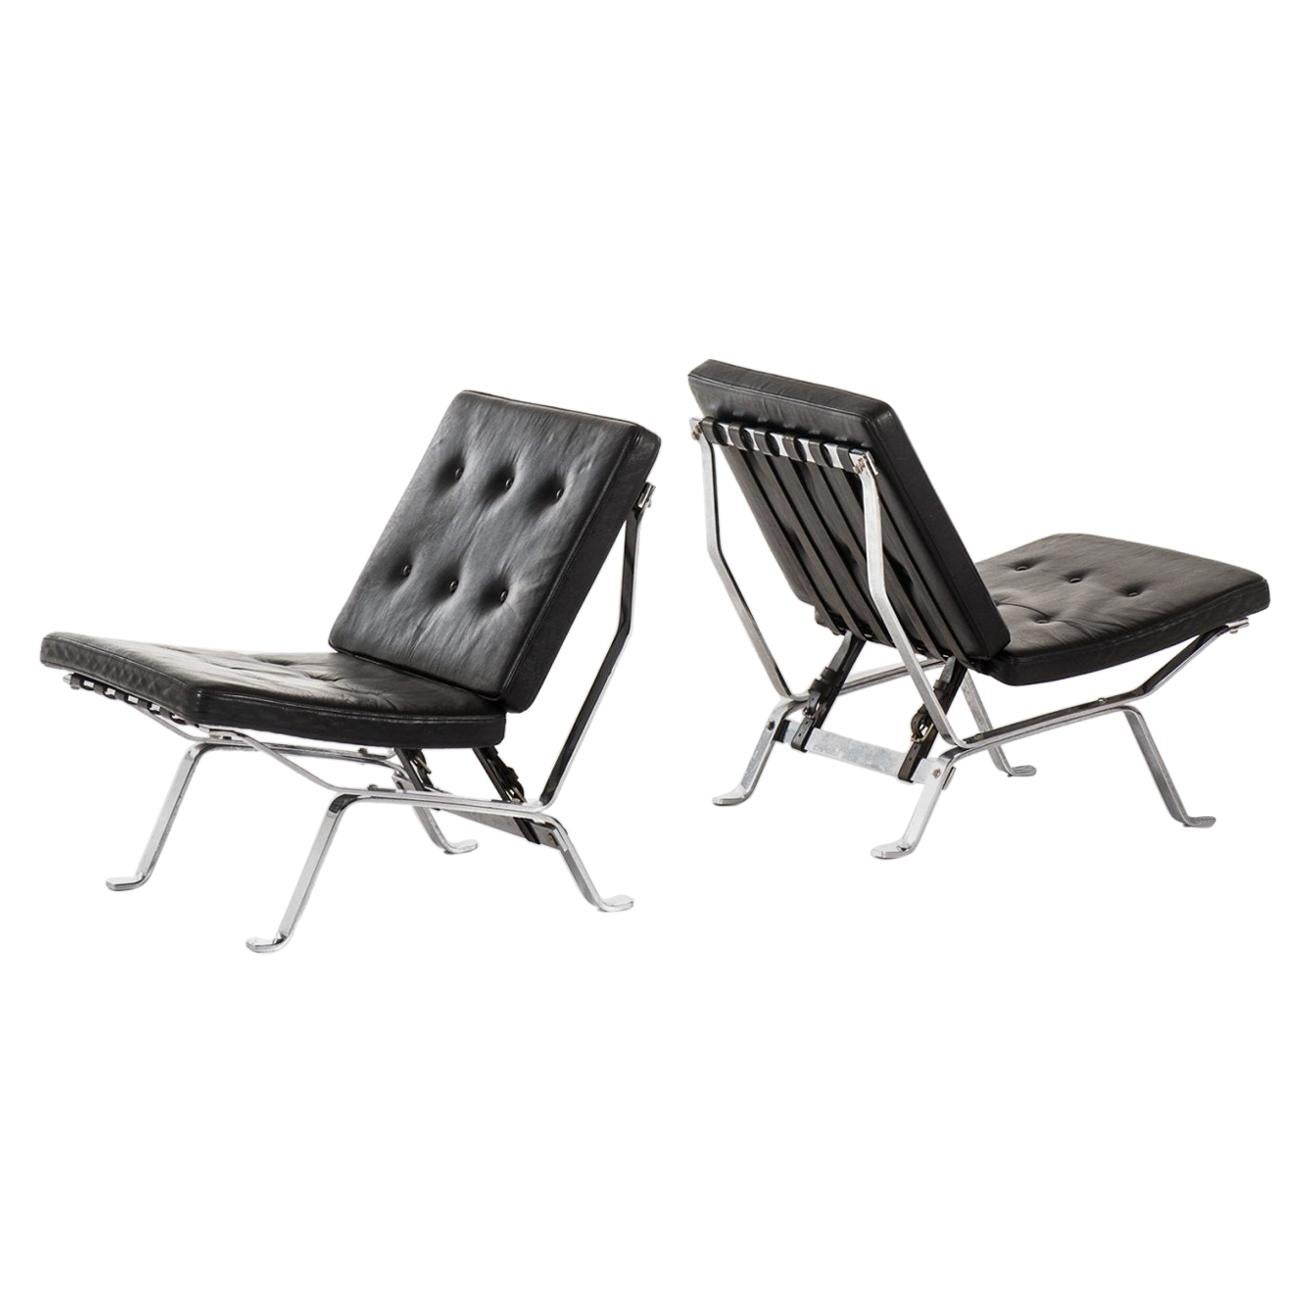 Easy Chairs Attributed to Olivier Mourgue Produced by Airborne in France